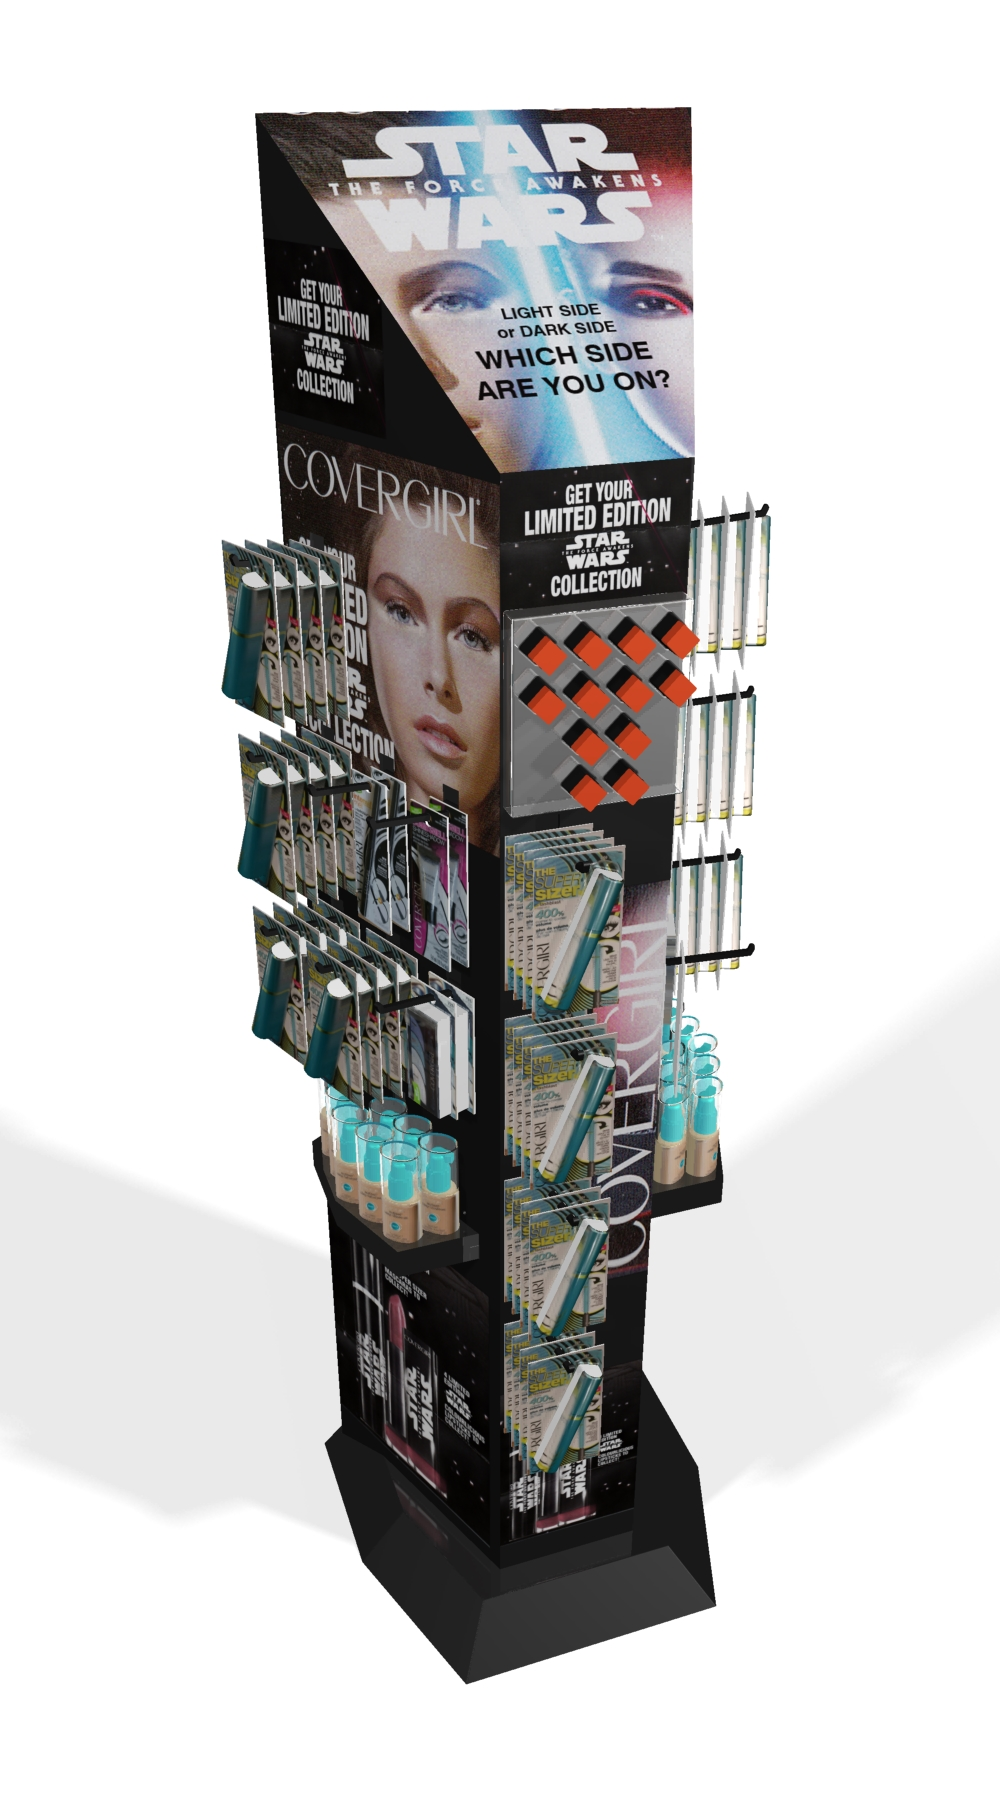 Covergirl Starwars Promotional Floorstand